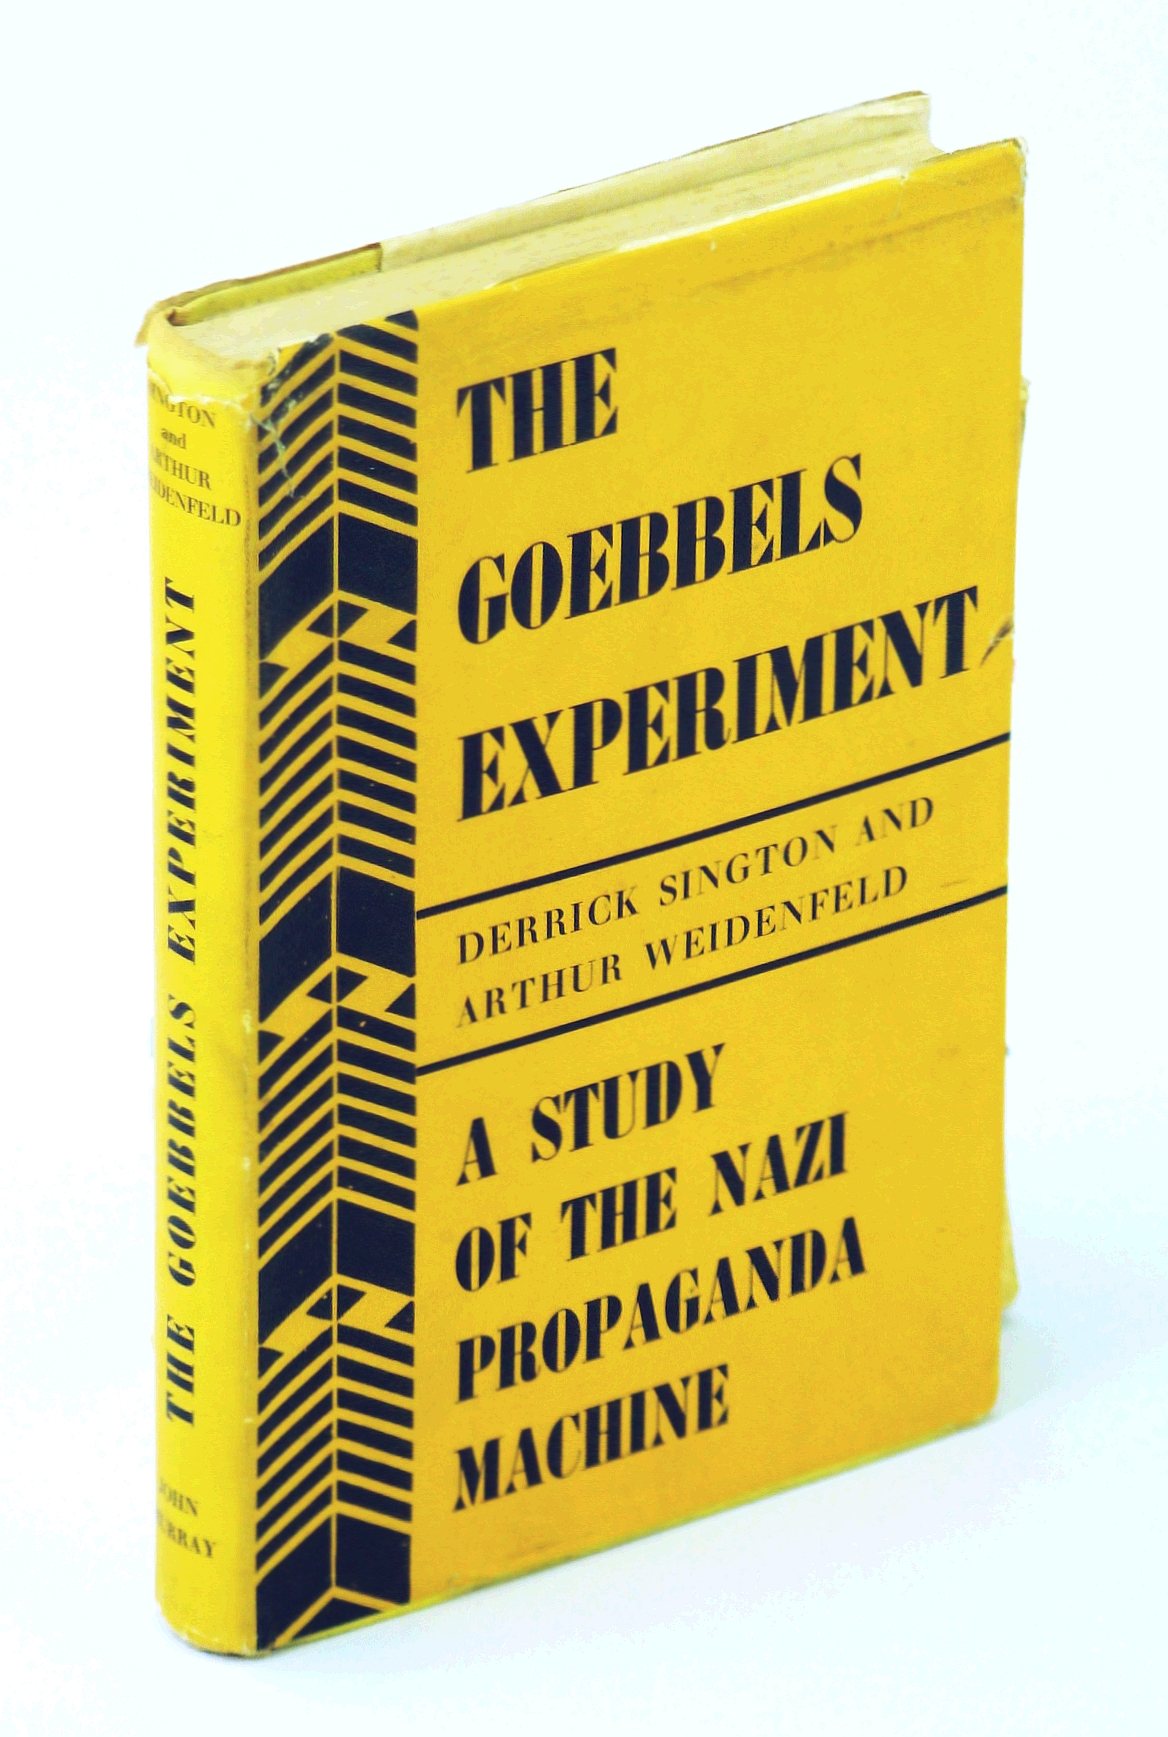 Image for The Goebbels experiment;: A study of the Nazi propaganda machine,